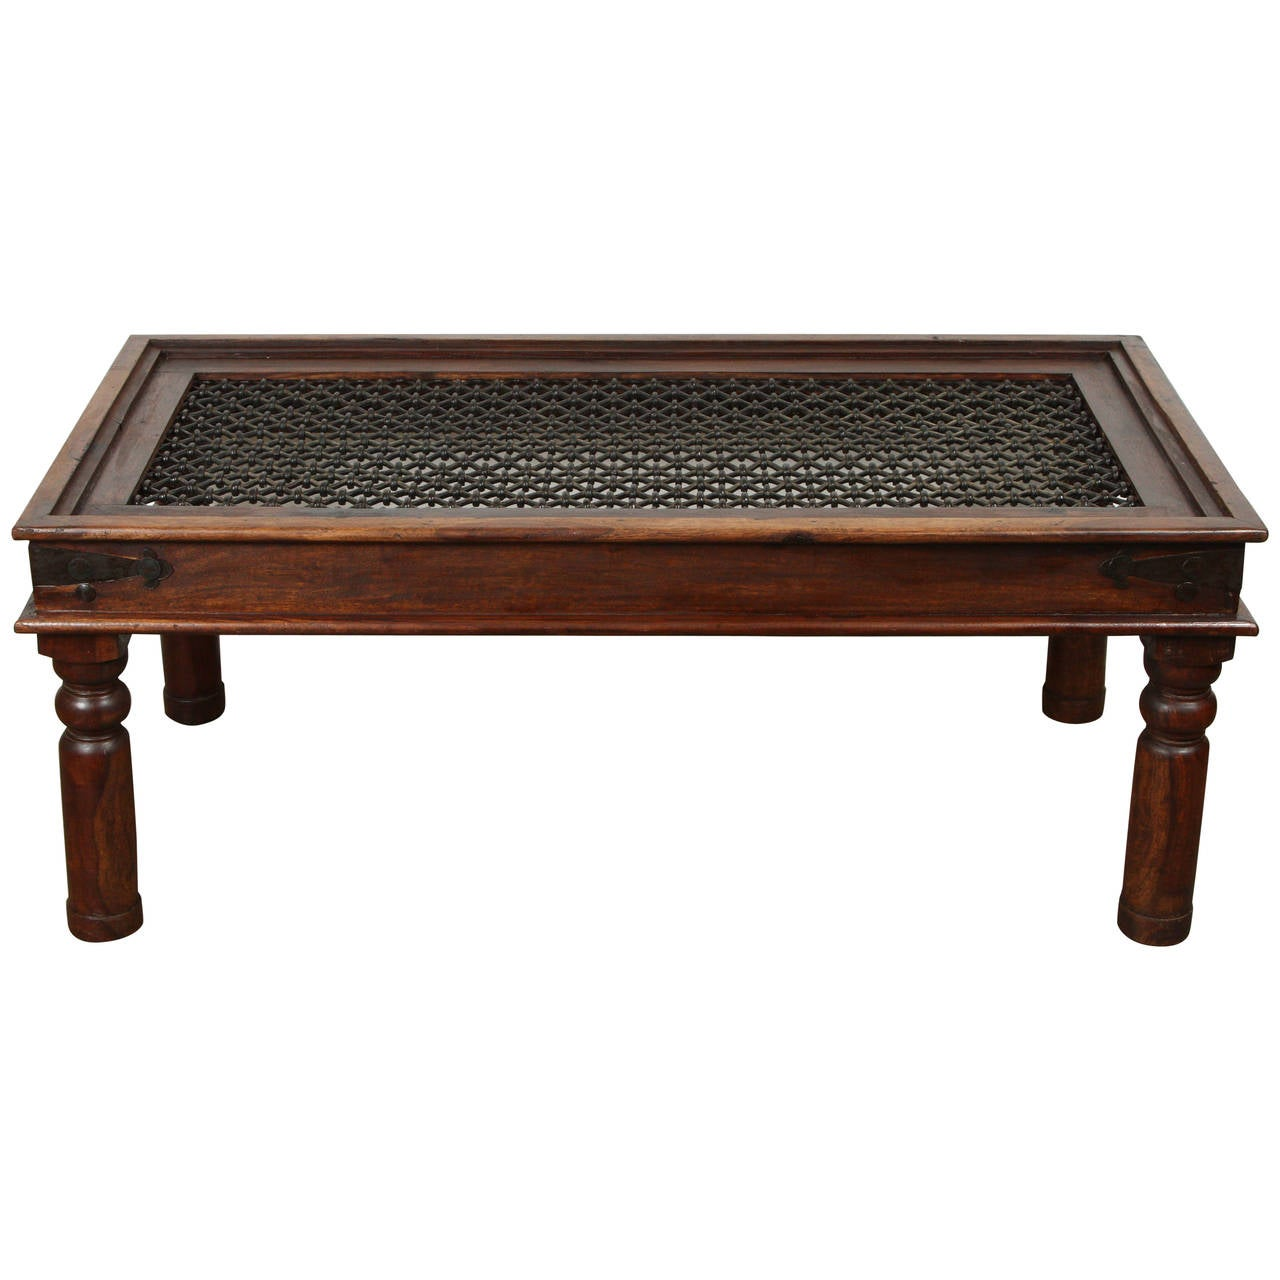 Spanish Styyle Coffee Table With Iron For Sale At 1stdibs